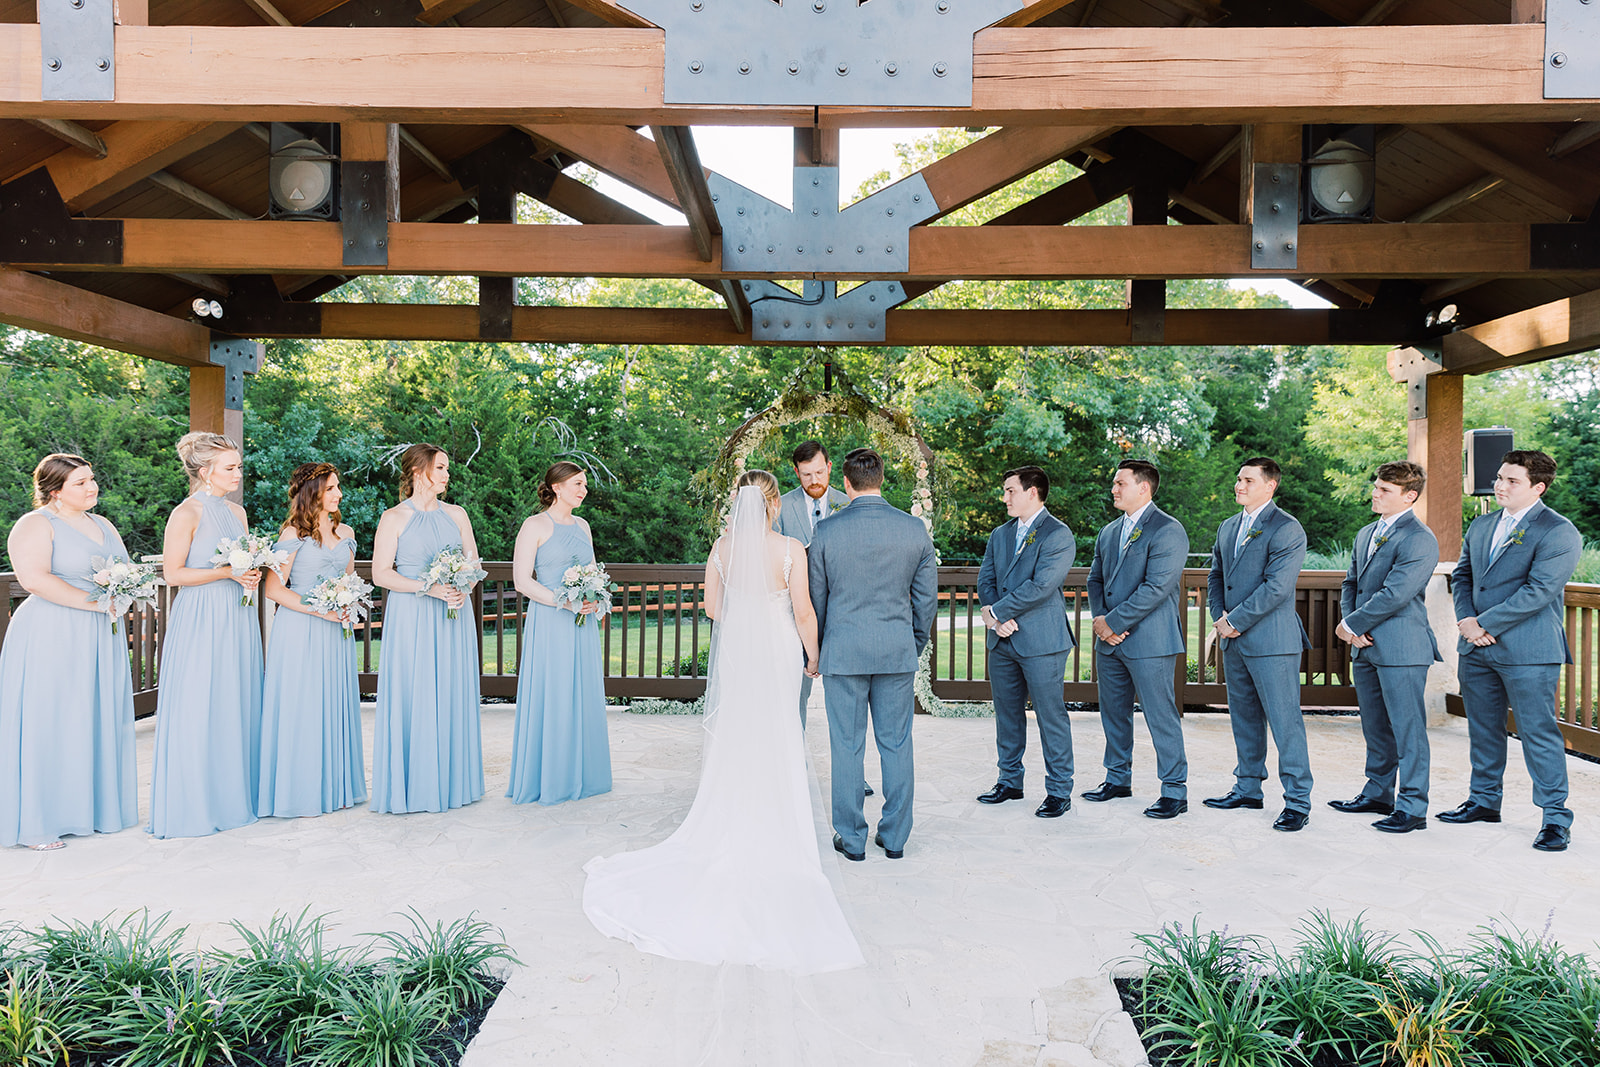 Springs Venue Wedding Texas: | Romantic blue Texas wedding at Spring Venue by Alexa Kay Events